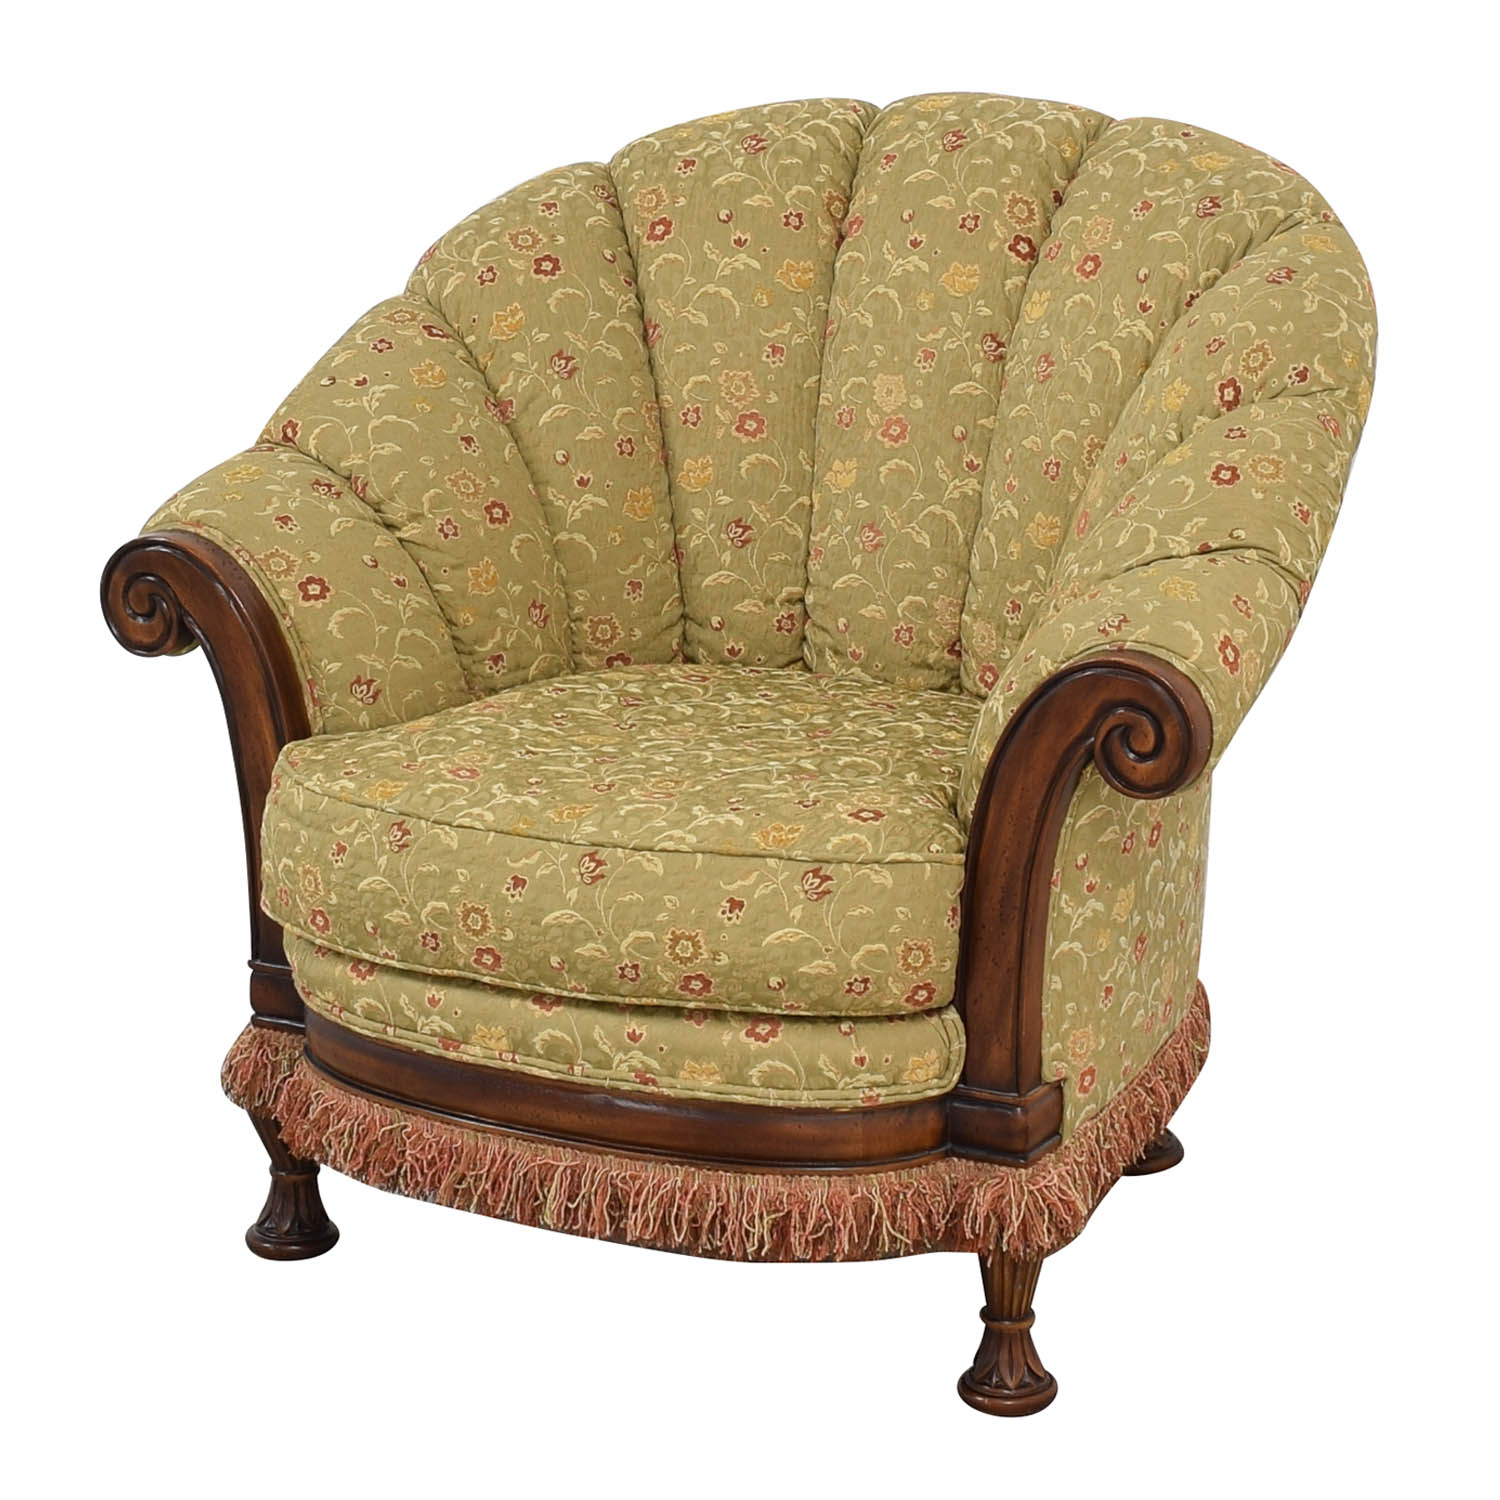 Vanguard Furniture Lauren Brooks Vanguard Furniture Scallop Back Rolled Arm Accent Chair multicolored